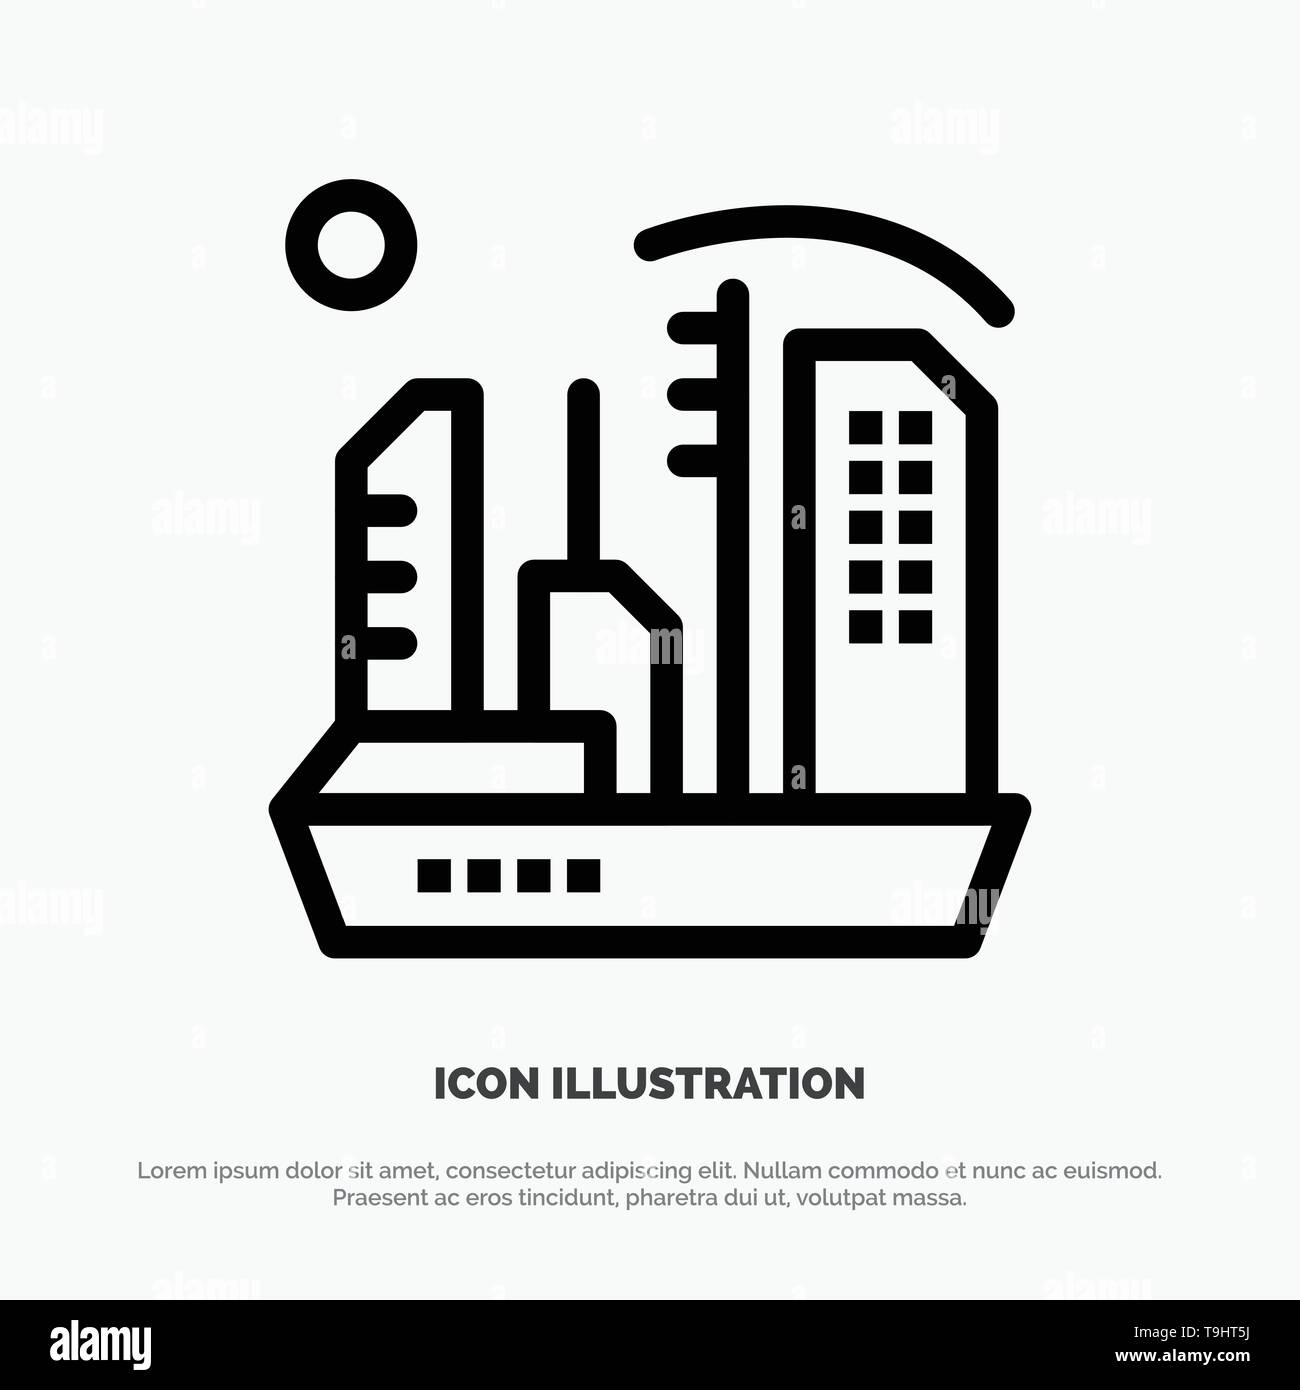 City, Colonization, Colony, Dome, Expansion Line Icon Vector Stock Vector